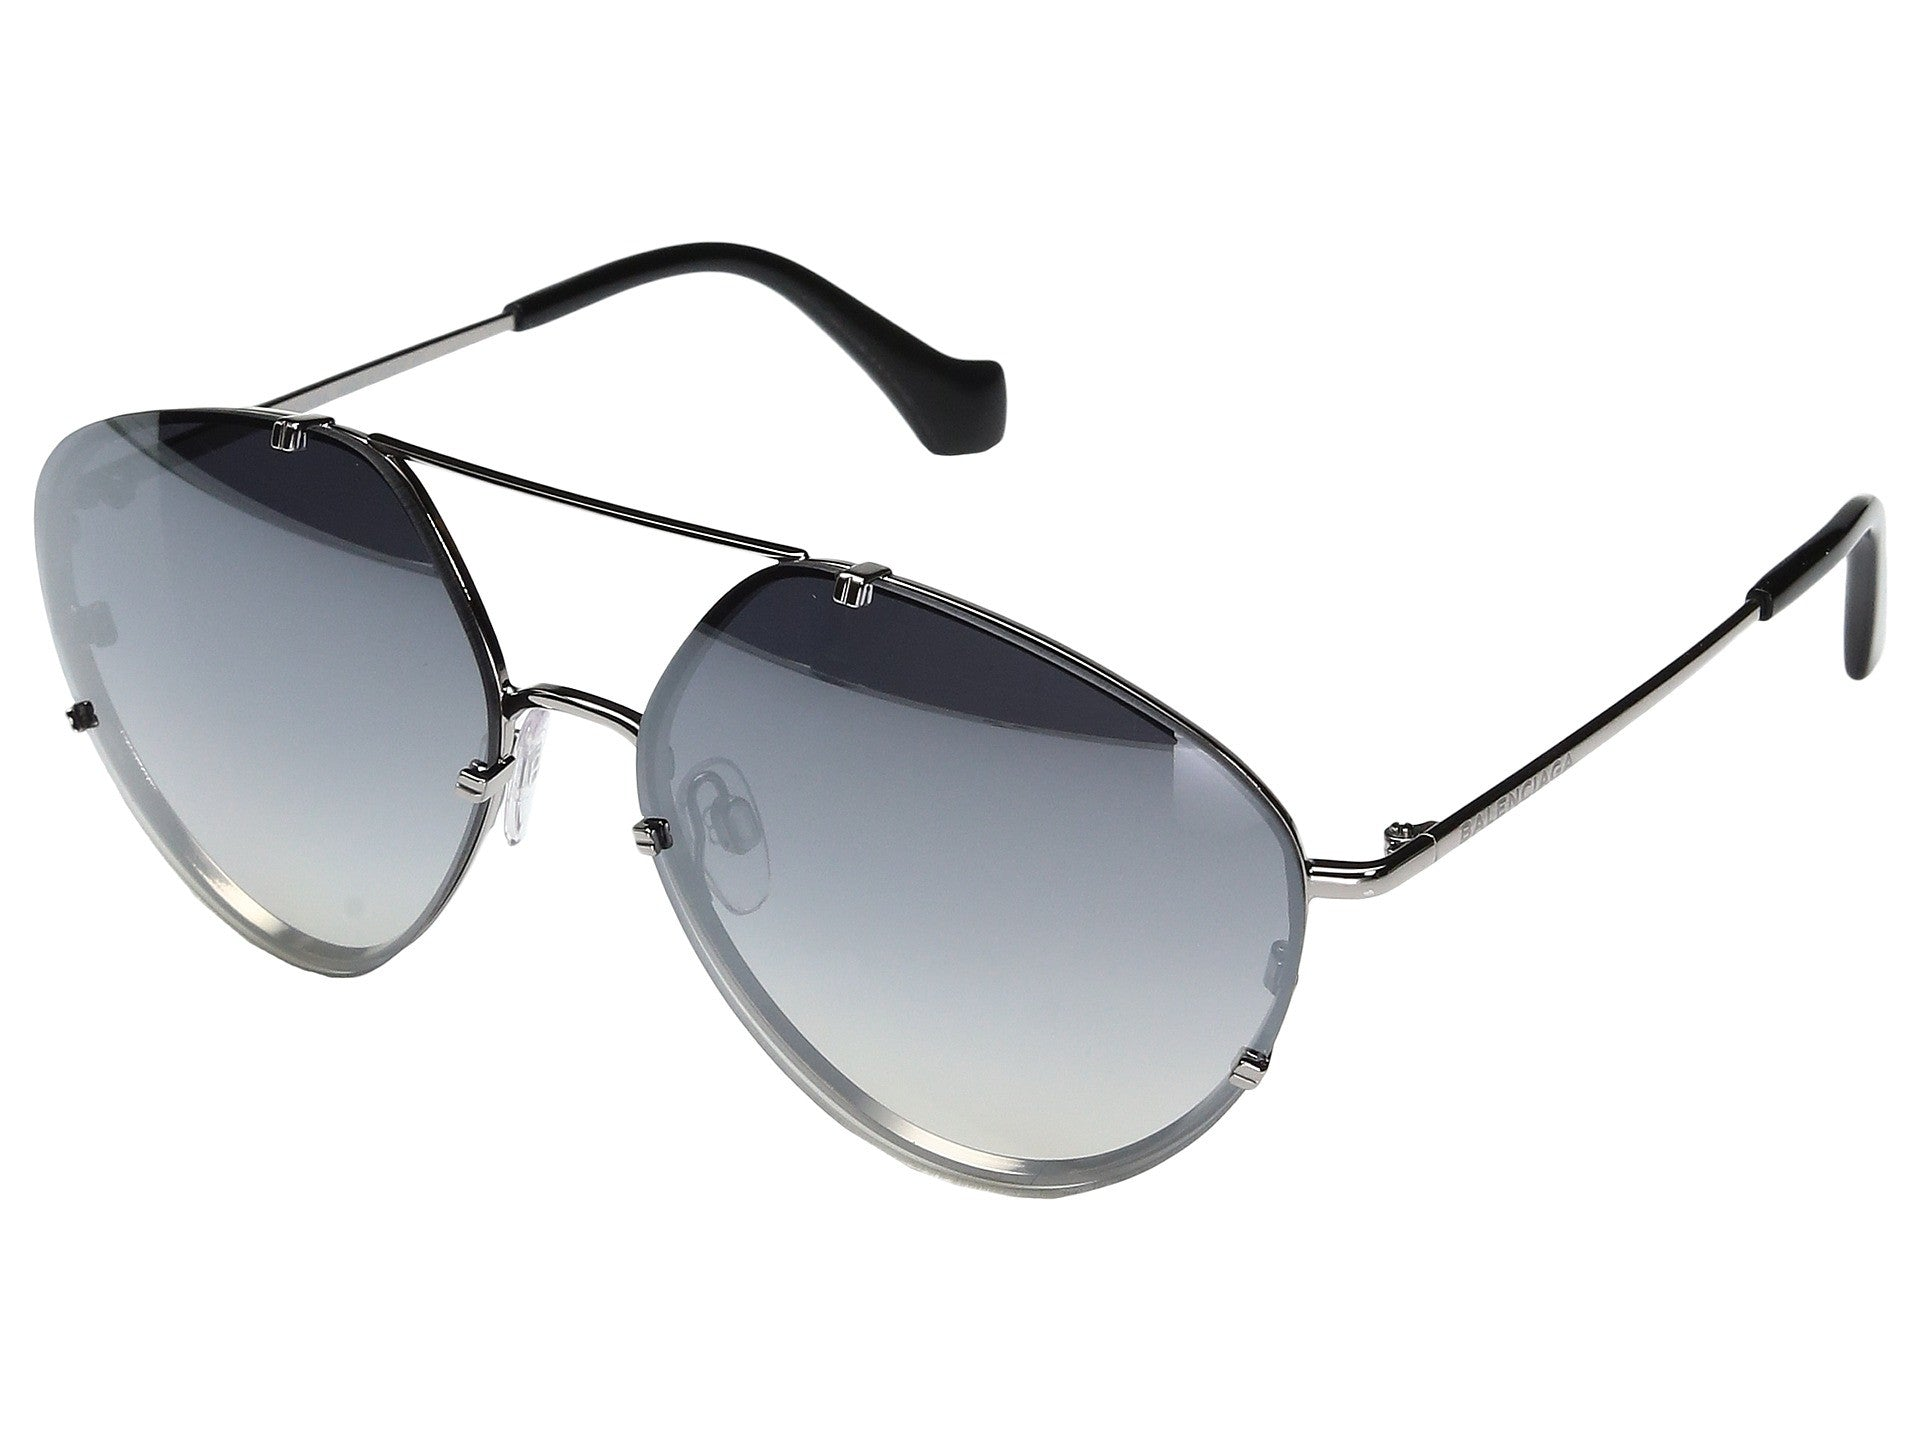 Balenciaga oval aviator smoke